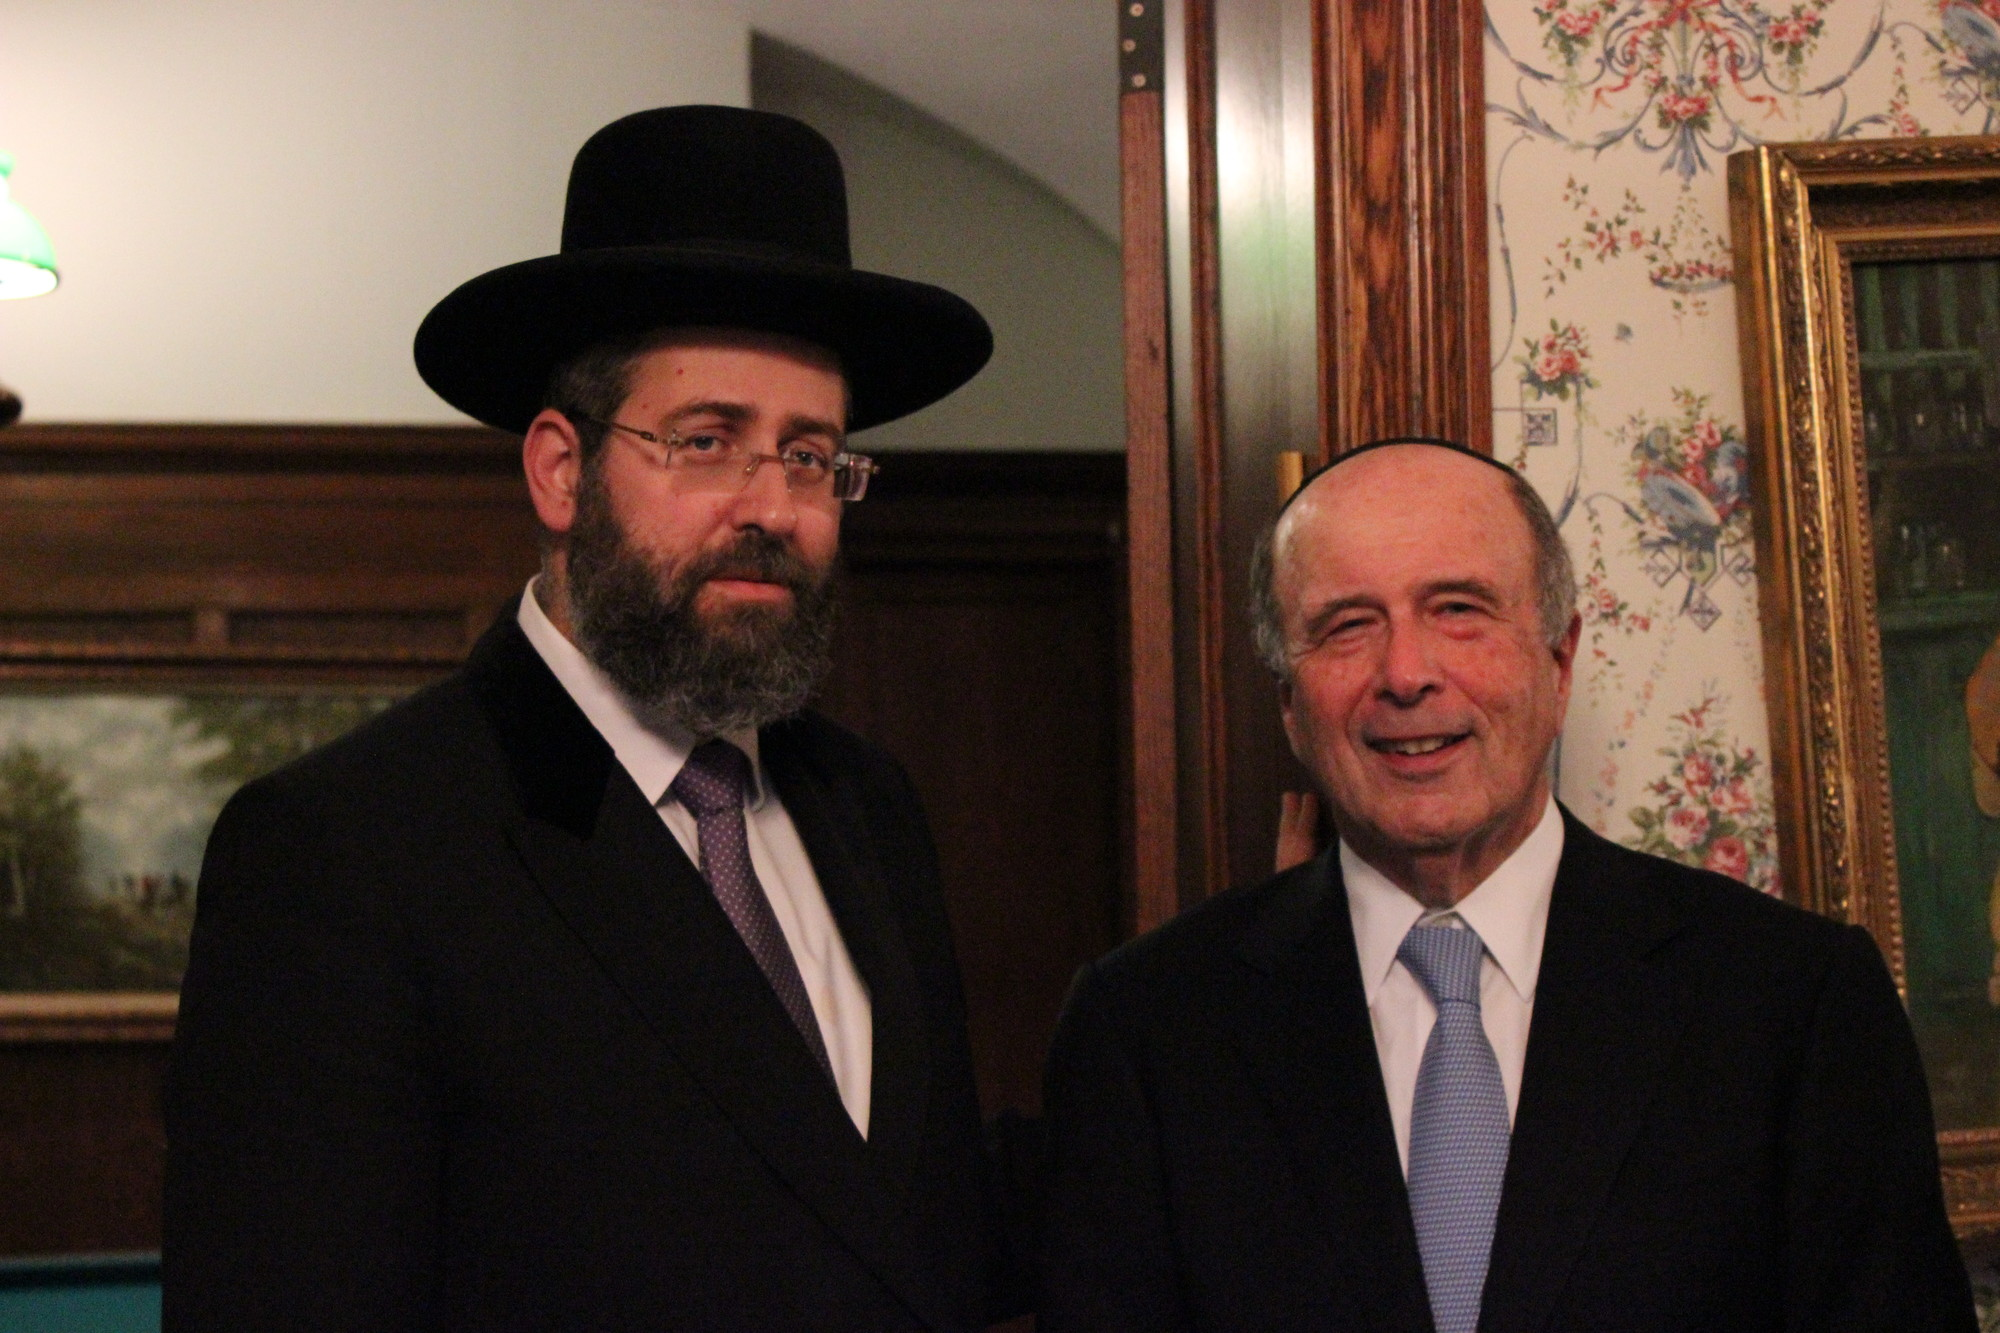 Village of Lawrence Mayor Martin Oliner, right, hosted the chief rabbi of Israel, David Lau, in his Central Avenue home Monday.